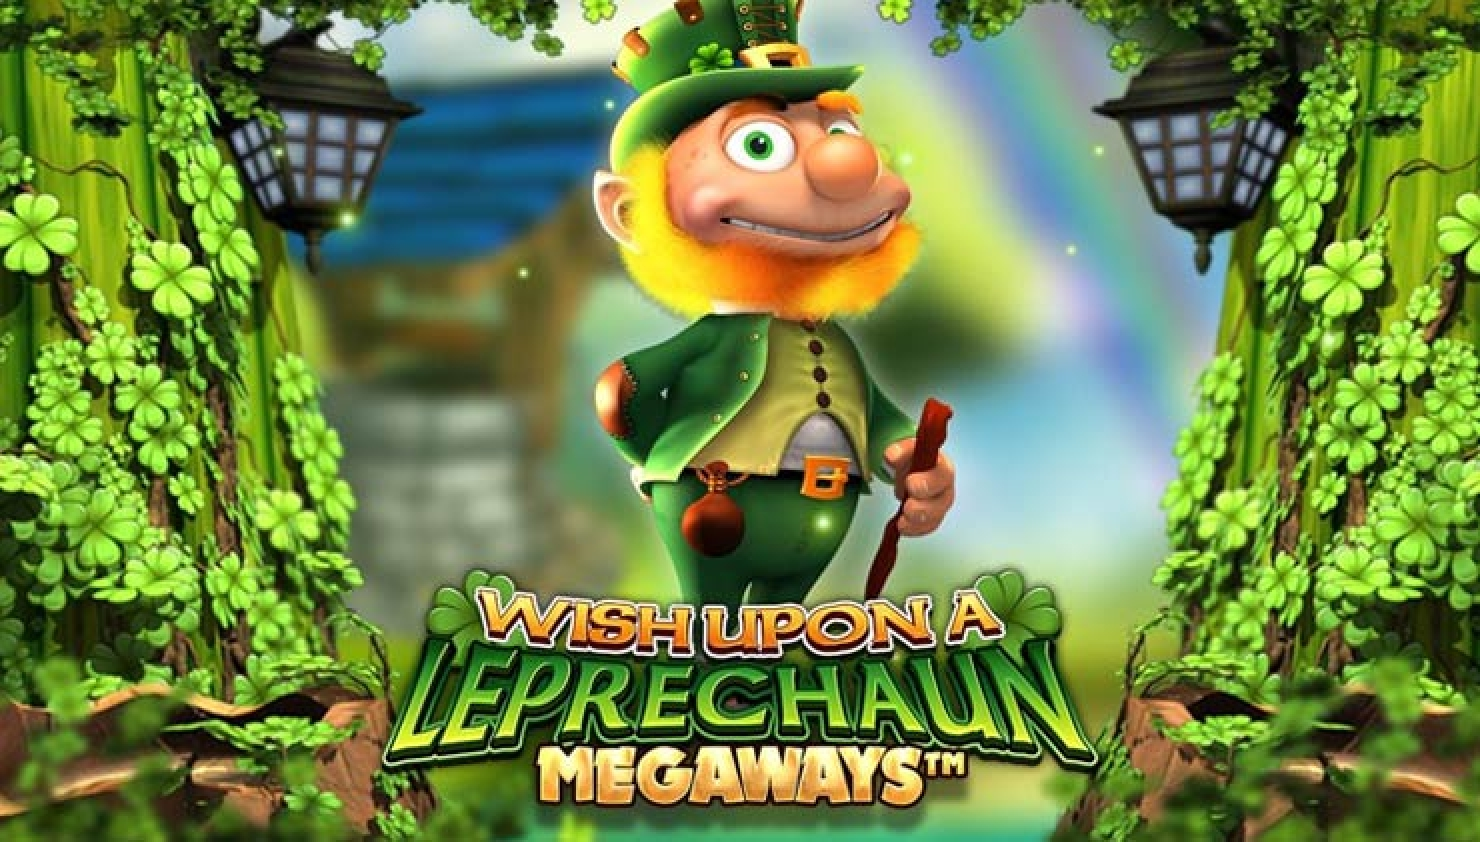 The Wish Upon A Leprechaun Megaways Online Slot Demo Game by Blueprint Gaming